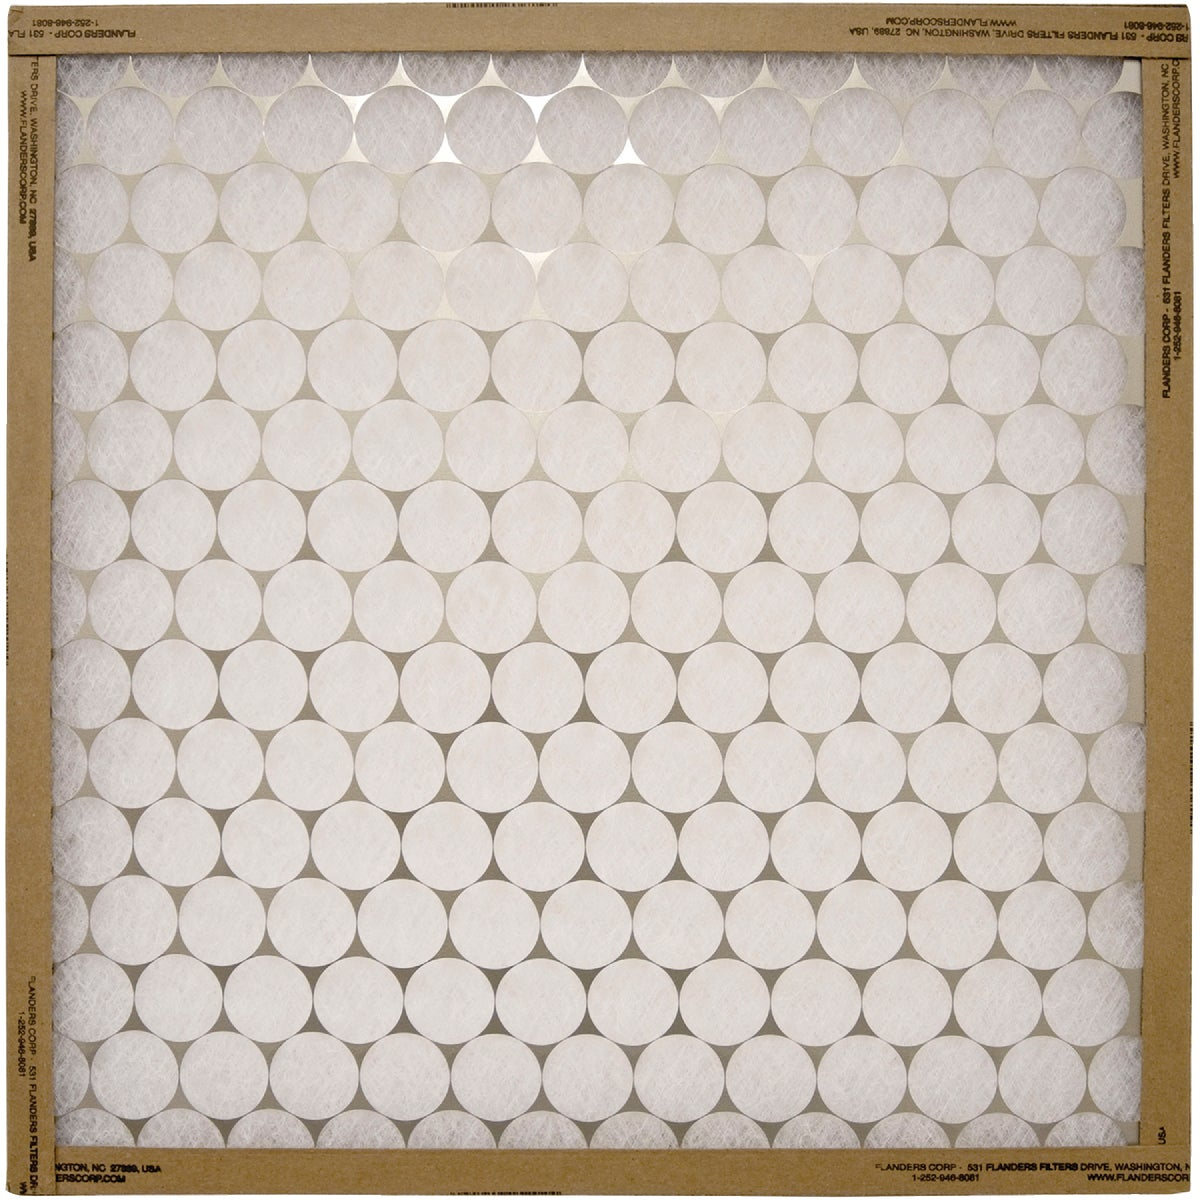 24X30 FURNACE FILTER - 10255.012430 by Flanders Corp